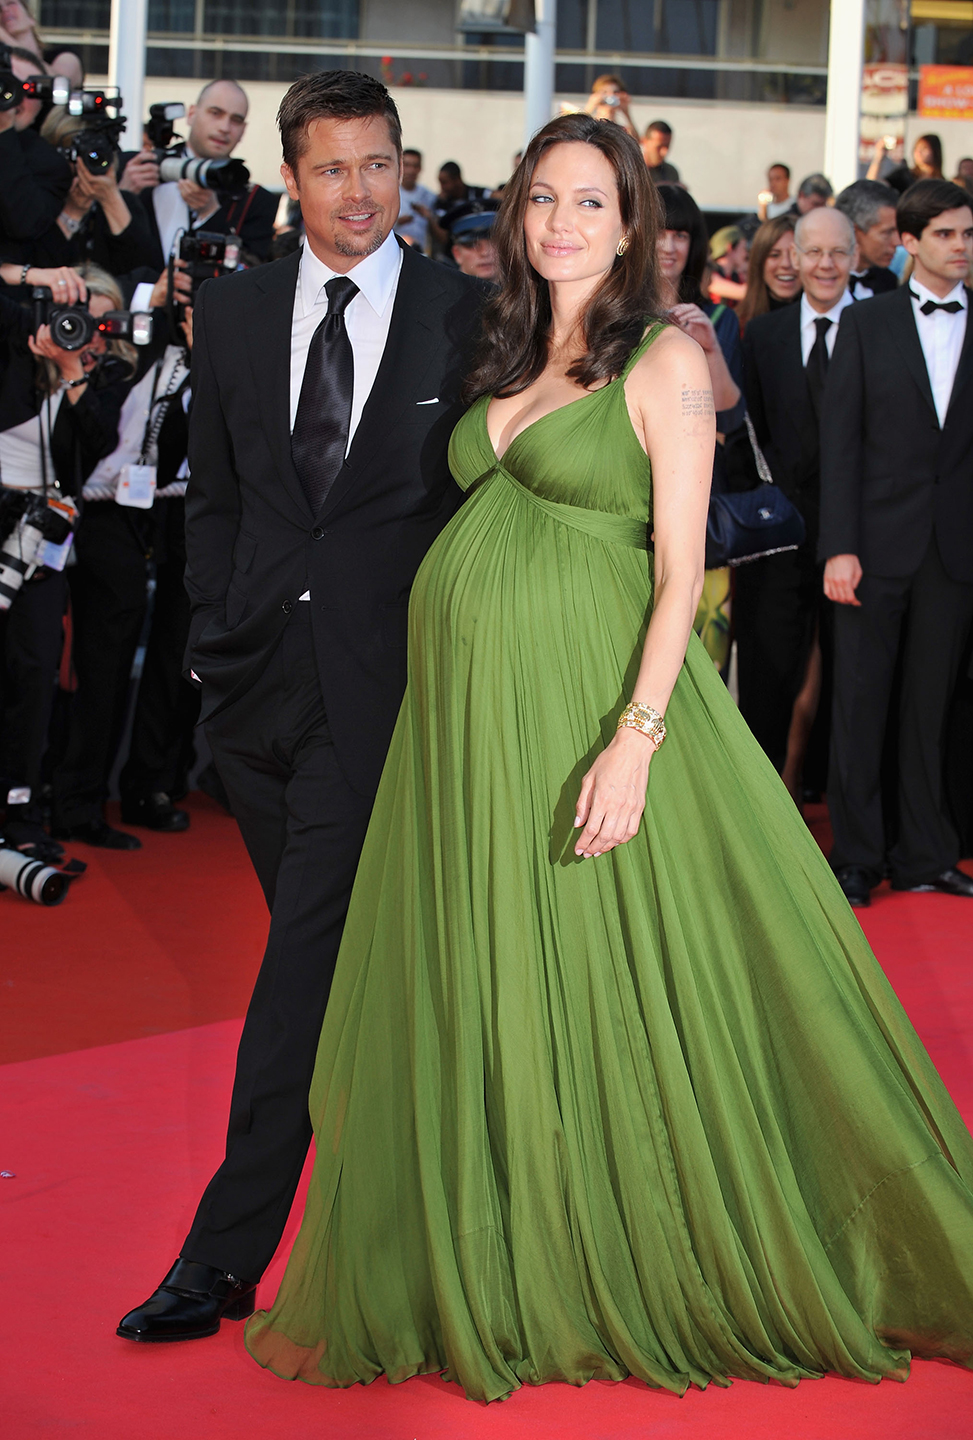 540080d5193f09557a7d0e33_brad-pitt-angelina-jolie-relationship-married-ss07